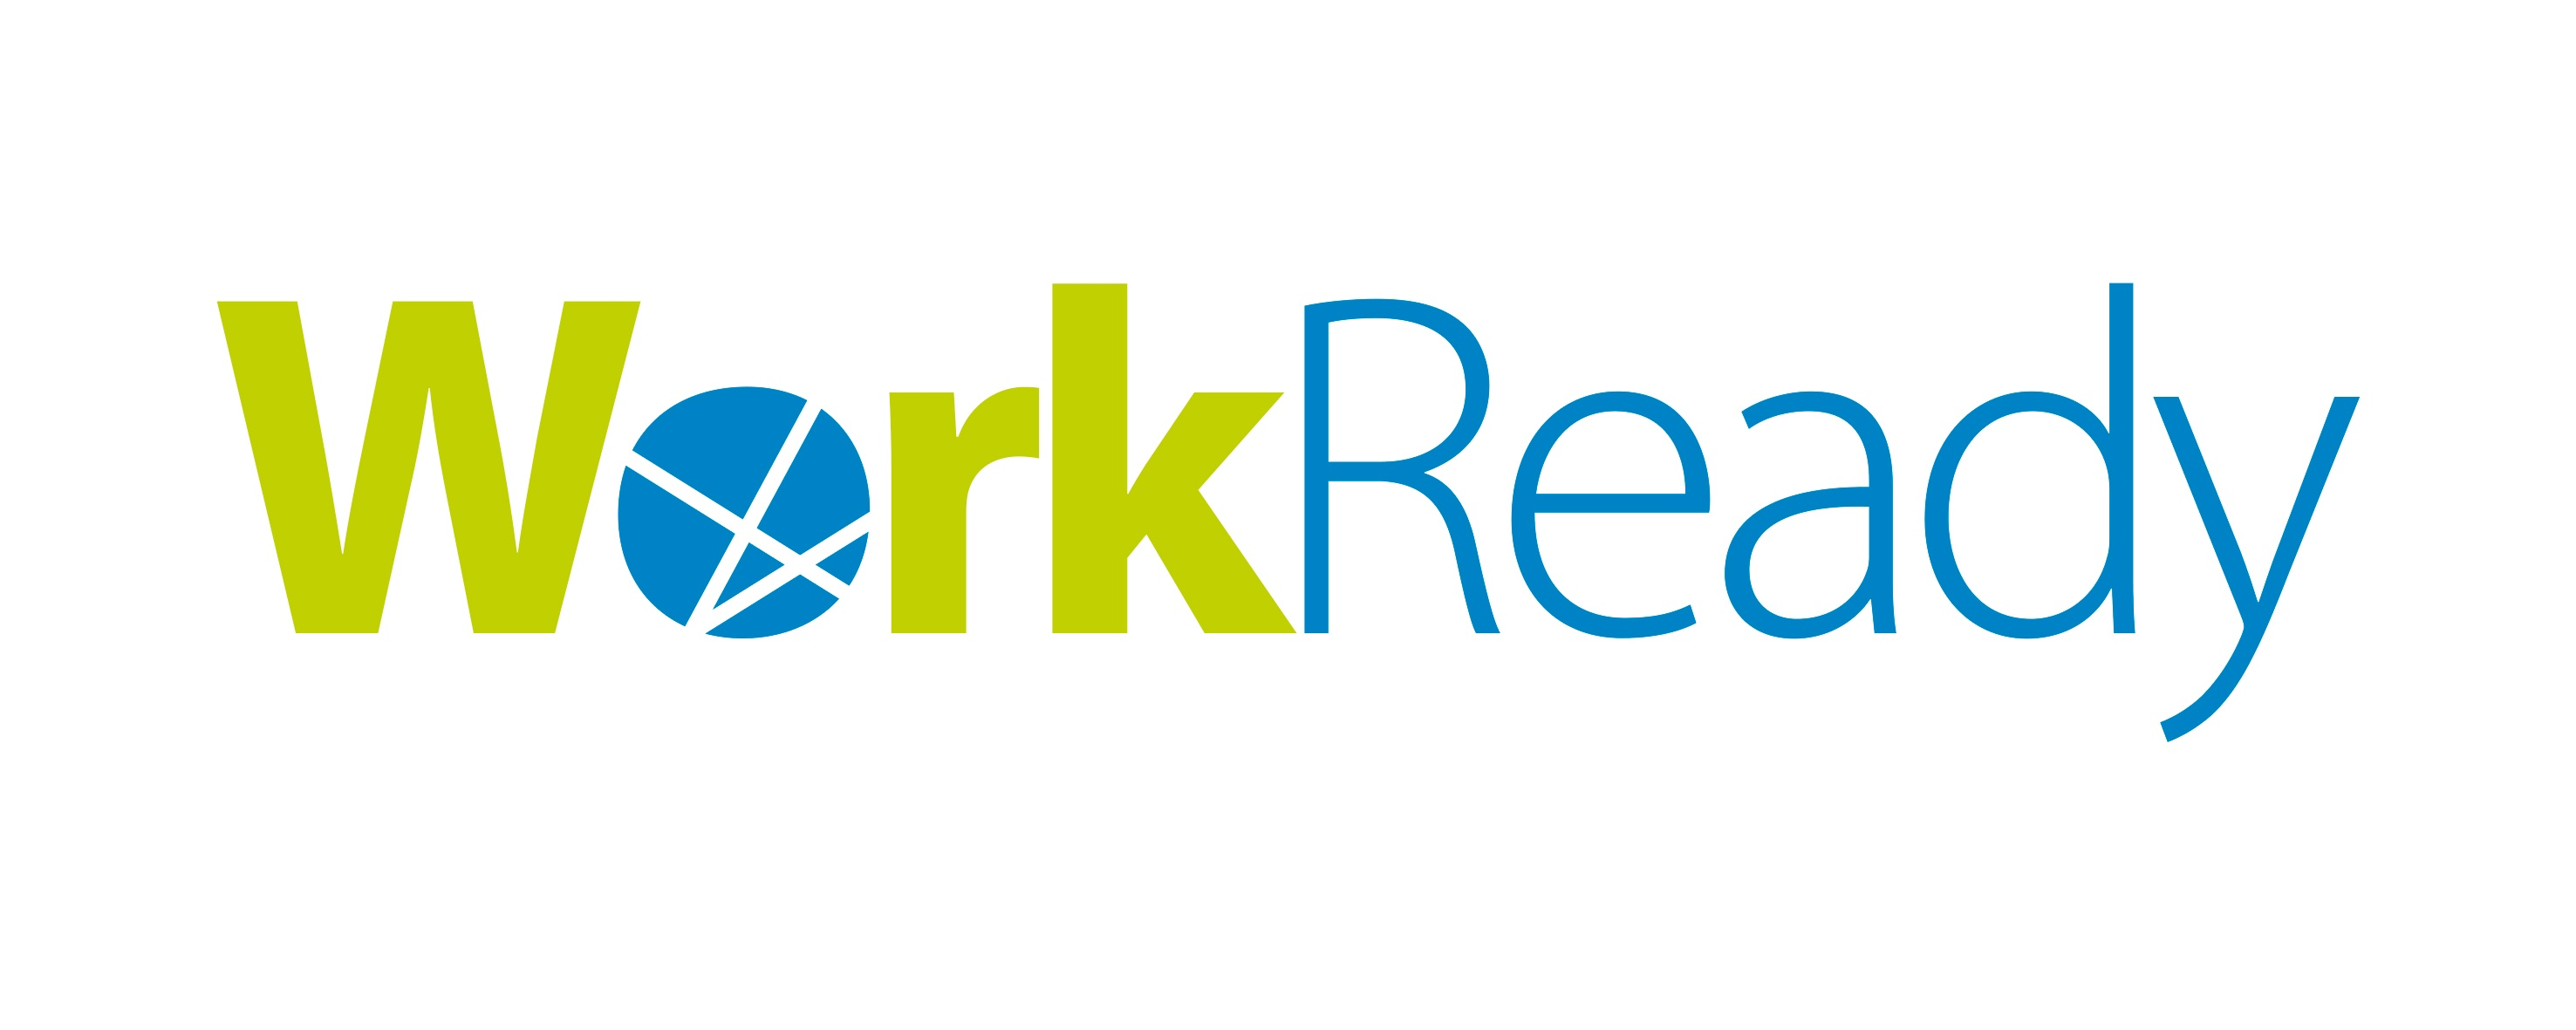 WorkReady Wordmark - CMYK - H.jpg